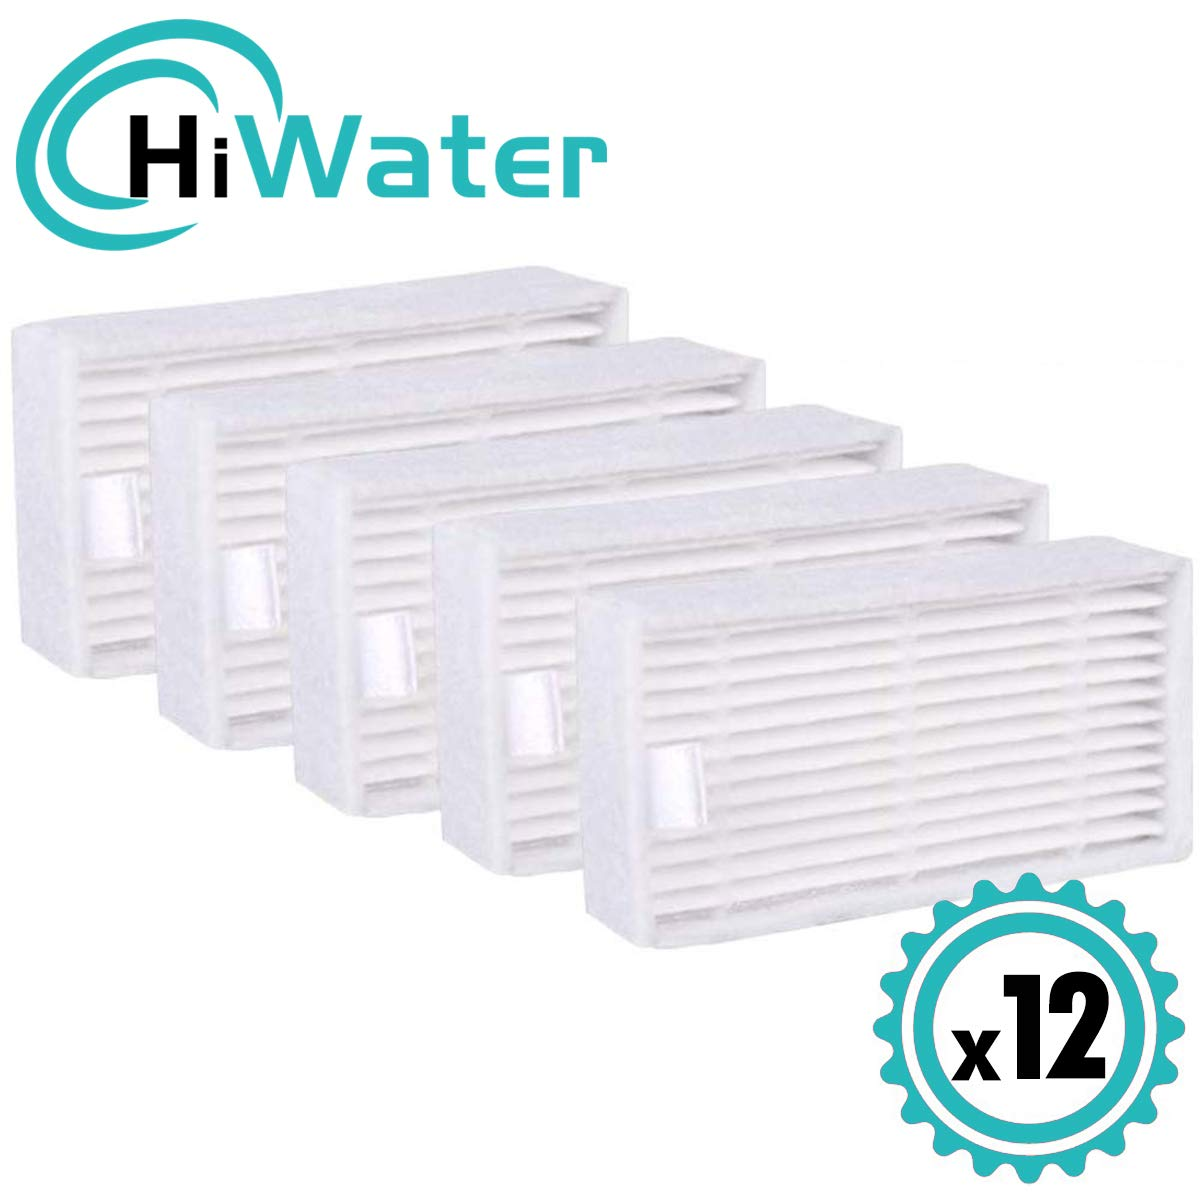 HiWater Replacement HEPA Filter Compatible with ILIFE Model V3 V3s pro V5 V5s Pro Robotic Vacuum Cleaner 12 Packs